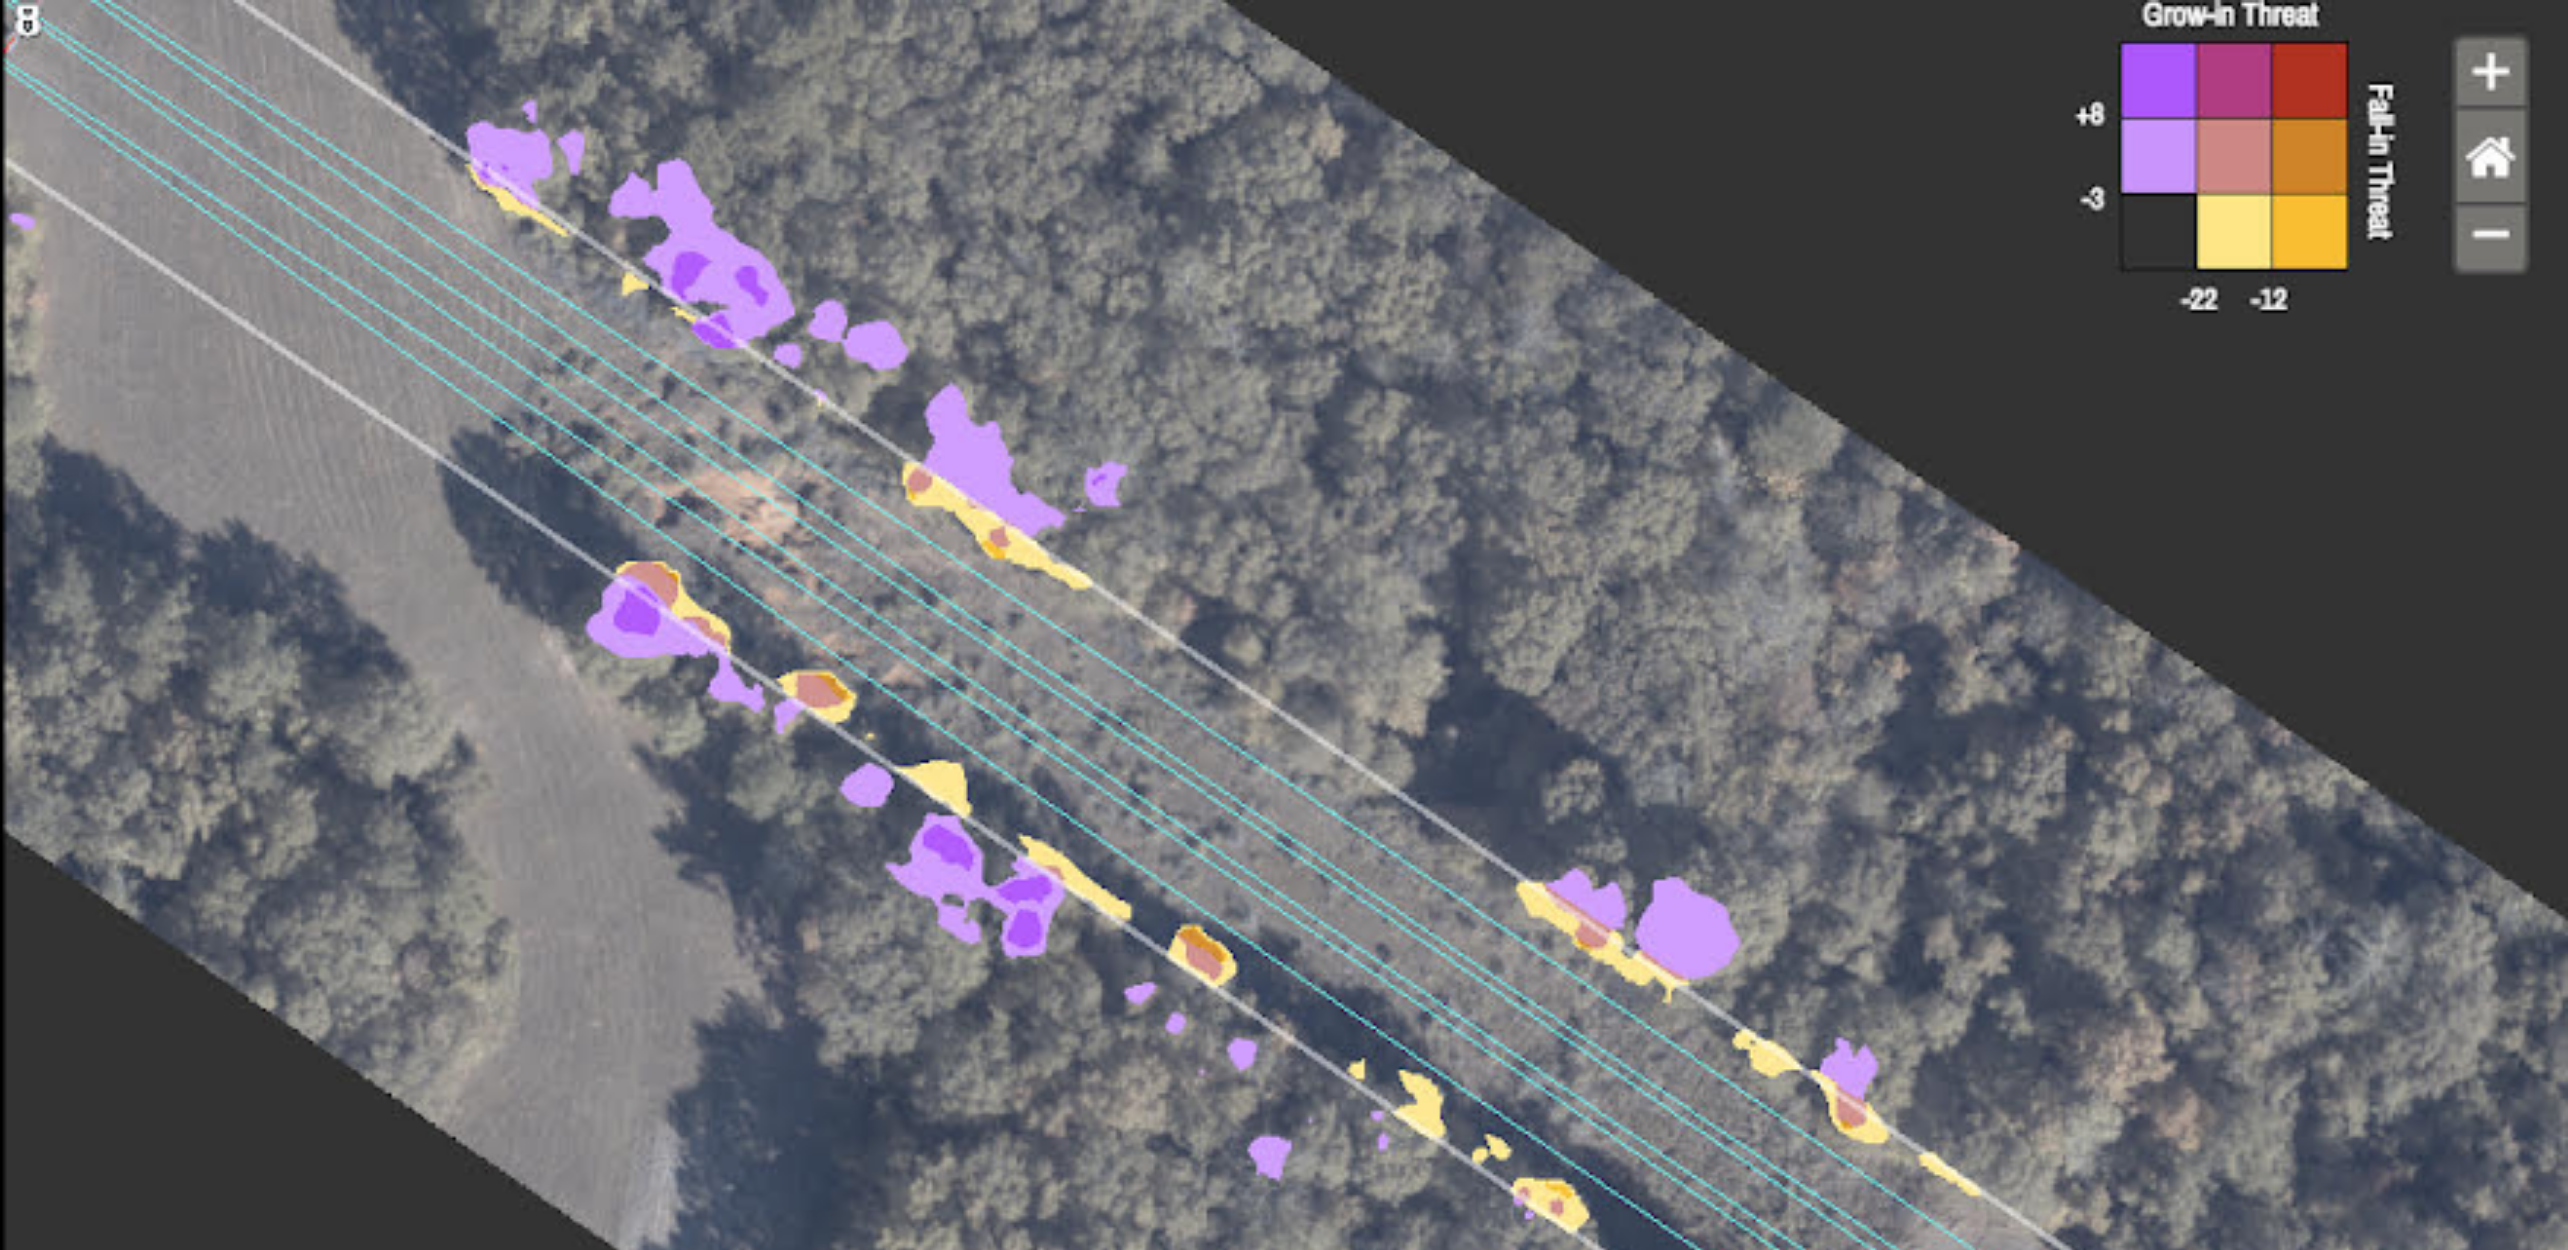 Utility line vegetation mapping by GeoCam